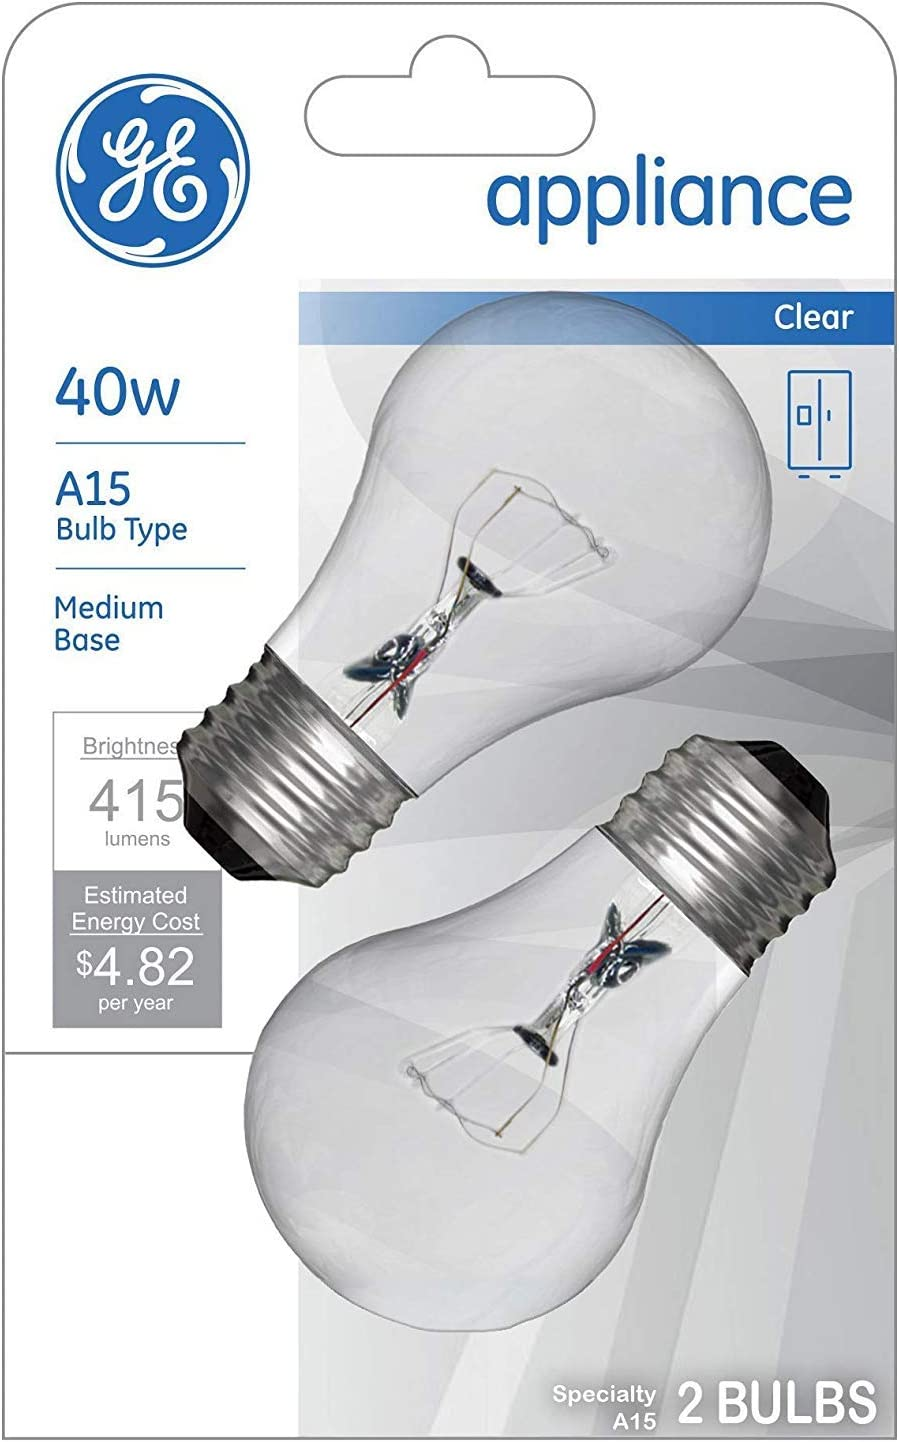 GE Appliance Clear Light Bulb 40w, A15 Bulb Type, Medium Base   415 Lumens   2-Count per Pack (1-Pack)